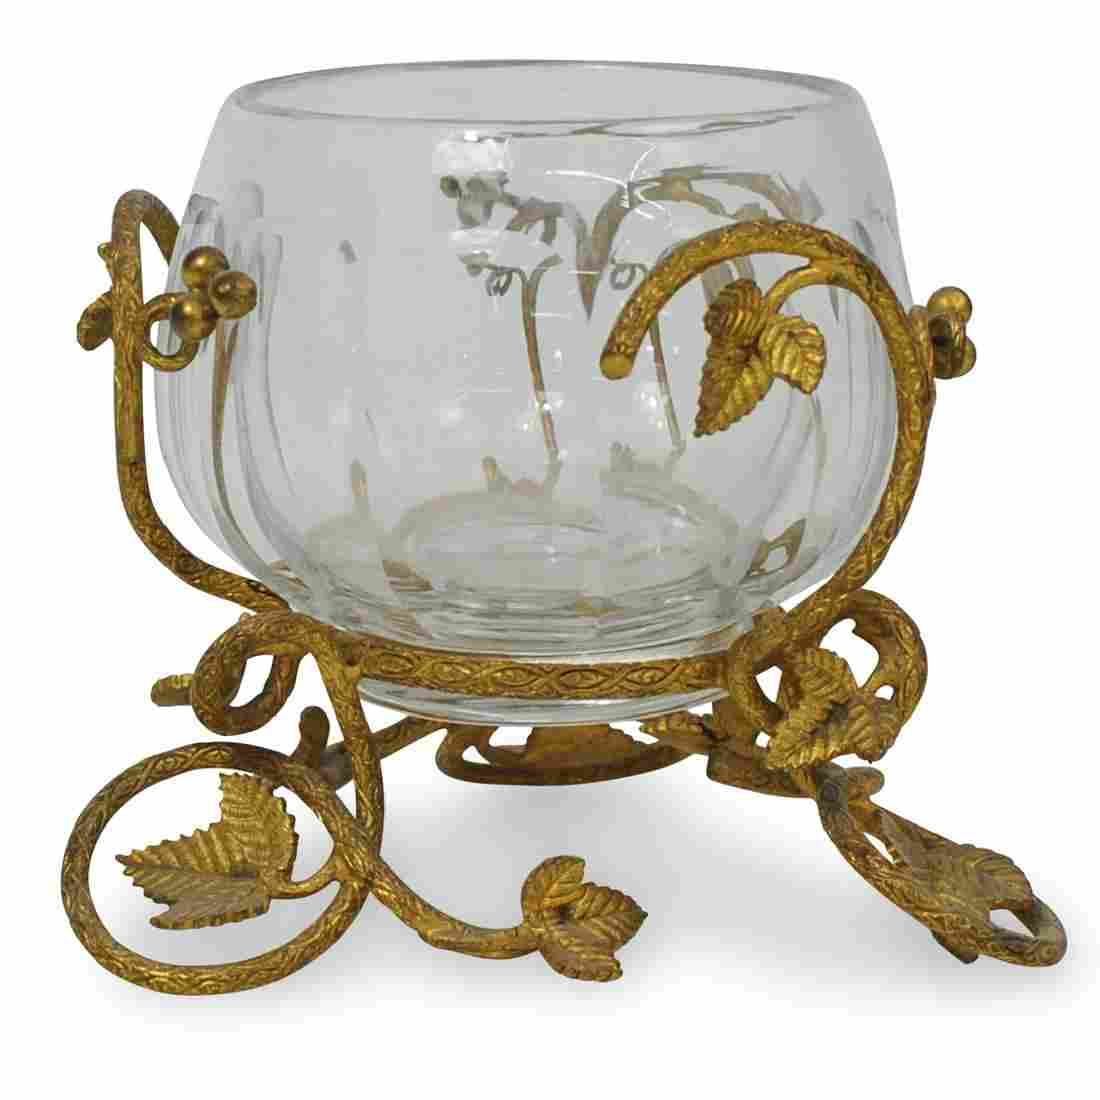 Crystal and Gilt Footed Bowl